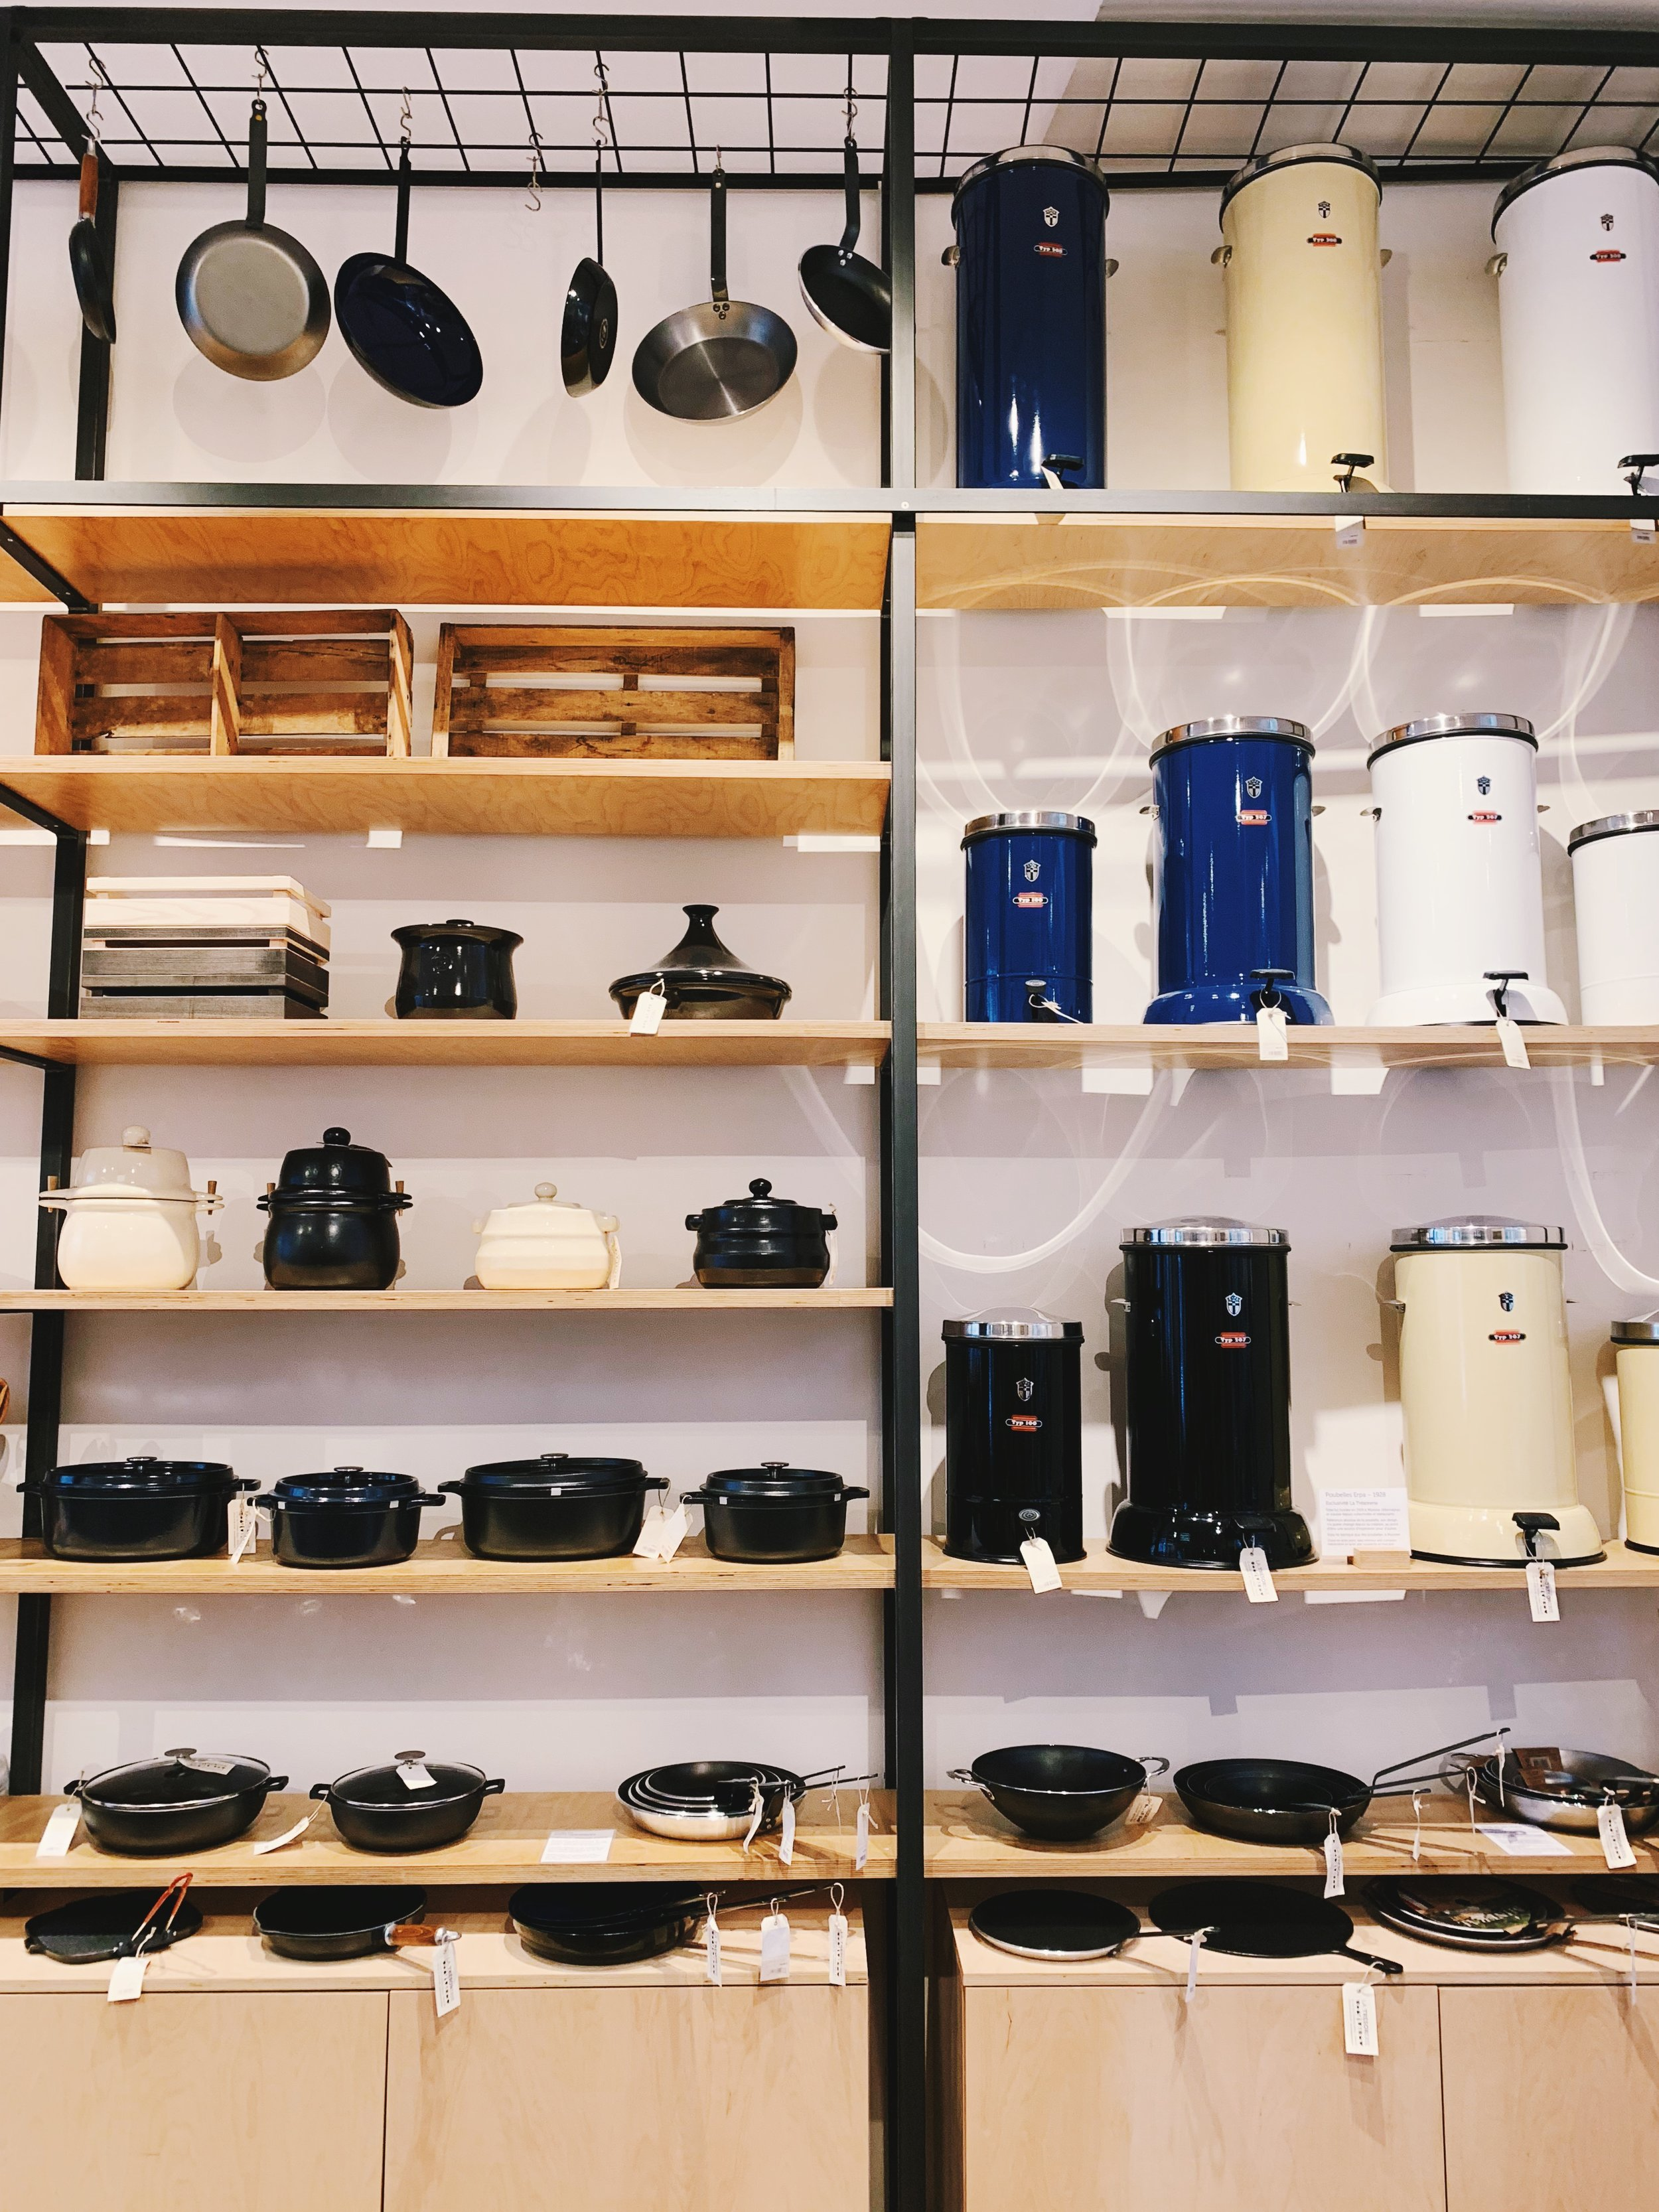 All the beautiful kitchenwares at La Trésorerie.